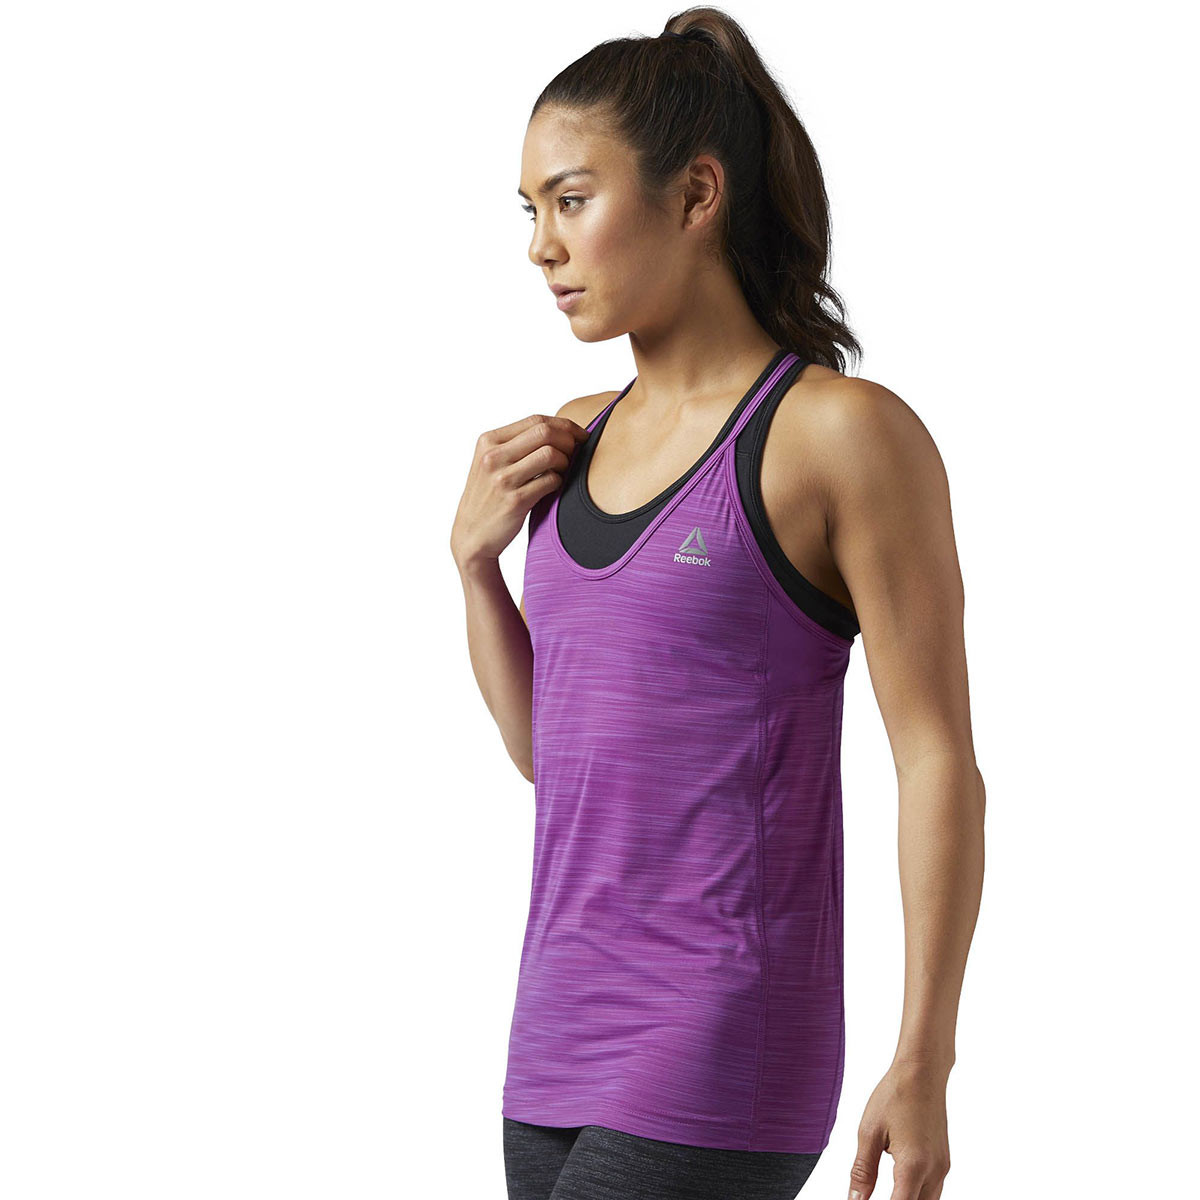 358ce60715e3be Reebok Activchill Tank - Fitness tops for Women - Pink